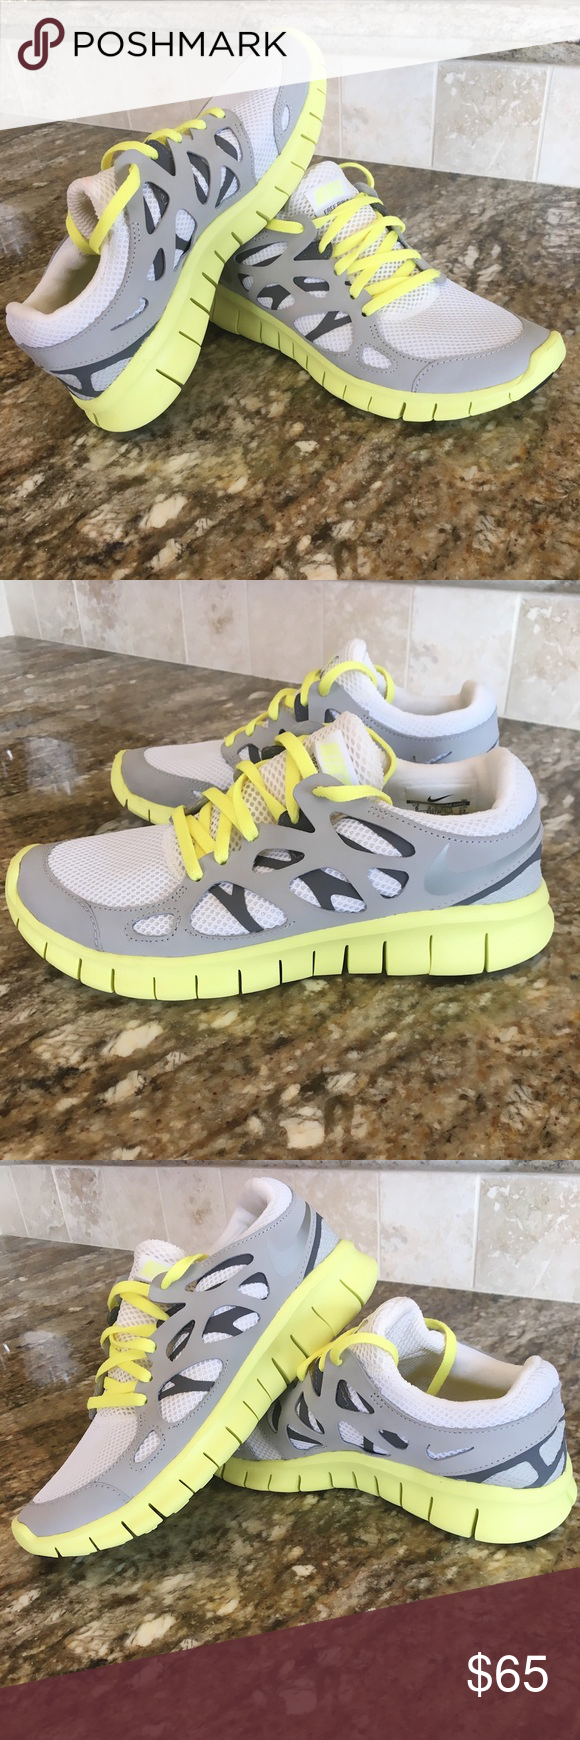 huge discount ddce3 6a444 Women s Nike Free Run +2 White Metallic Silver- Street Grey  Cool Grey Like  new without box Nike Shoes Sneakers